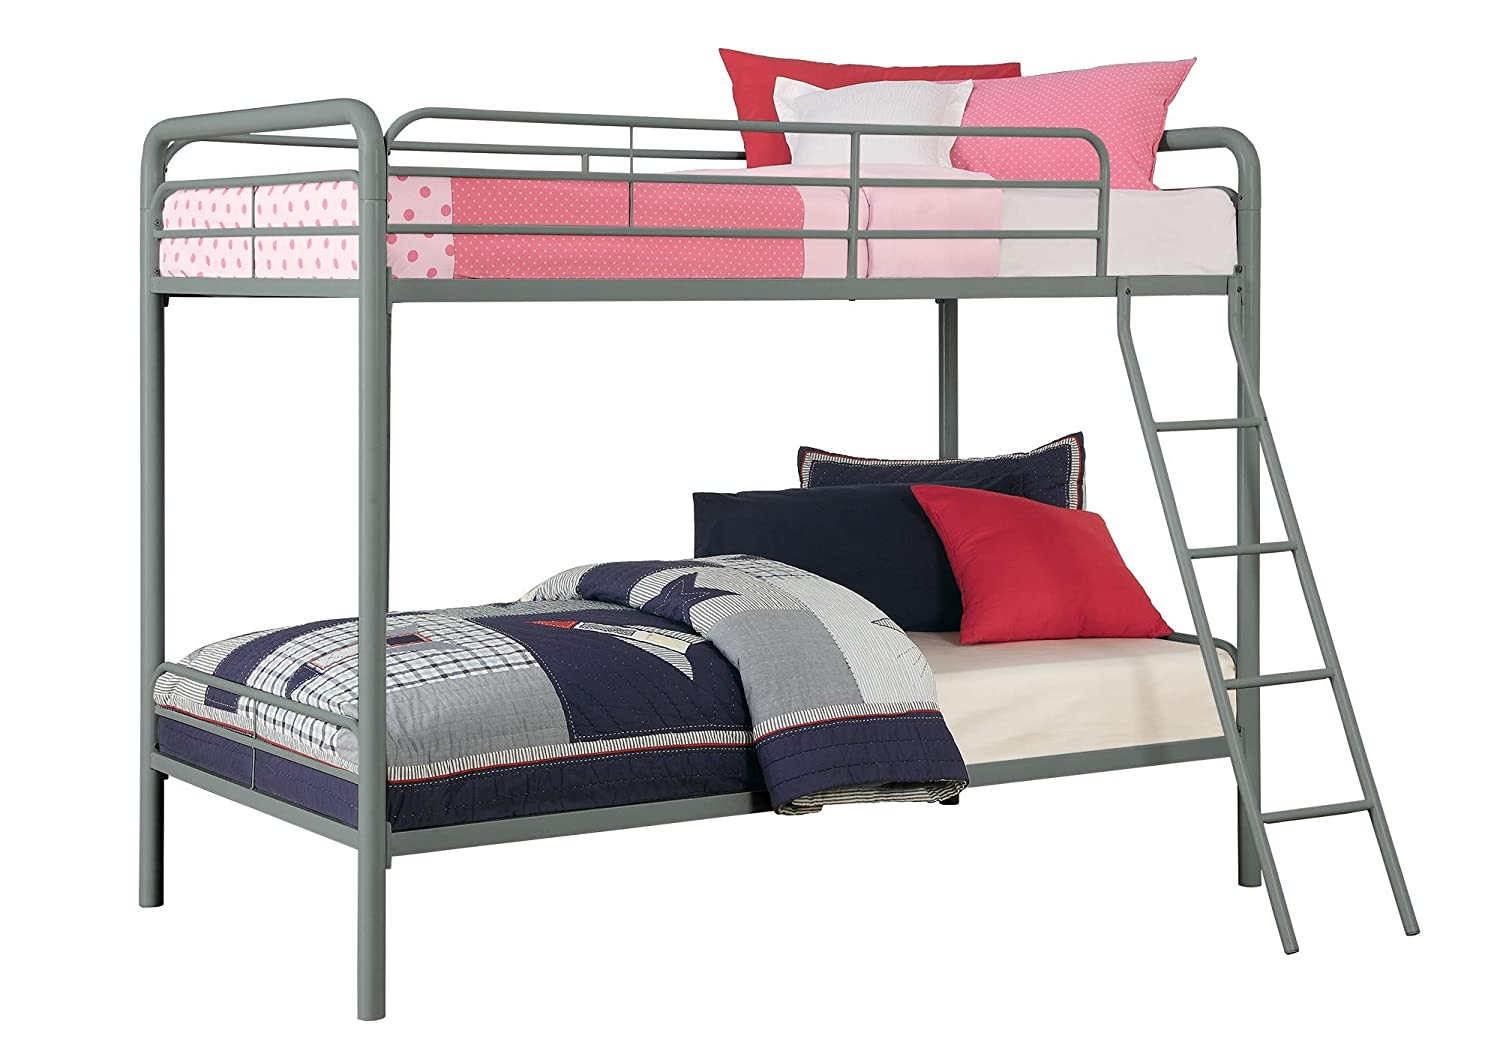 bunk bed twin over twin full frame mattress kids bedroom set stairs furniture ebay. Black Bedroom Furniture Sets. Home Design Ideas